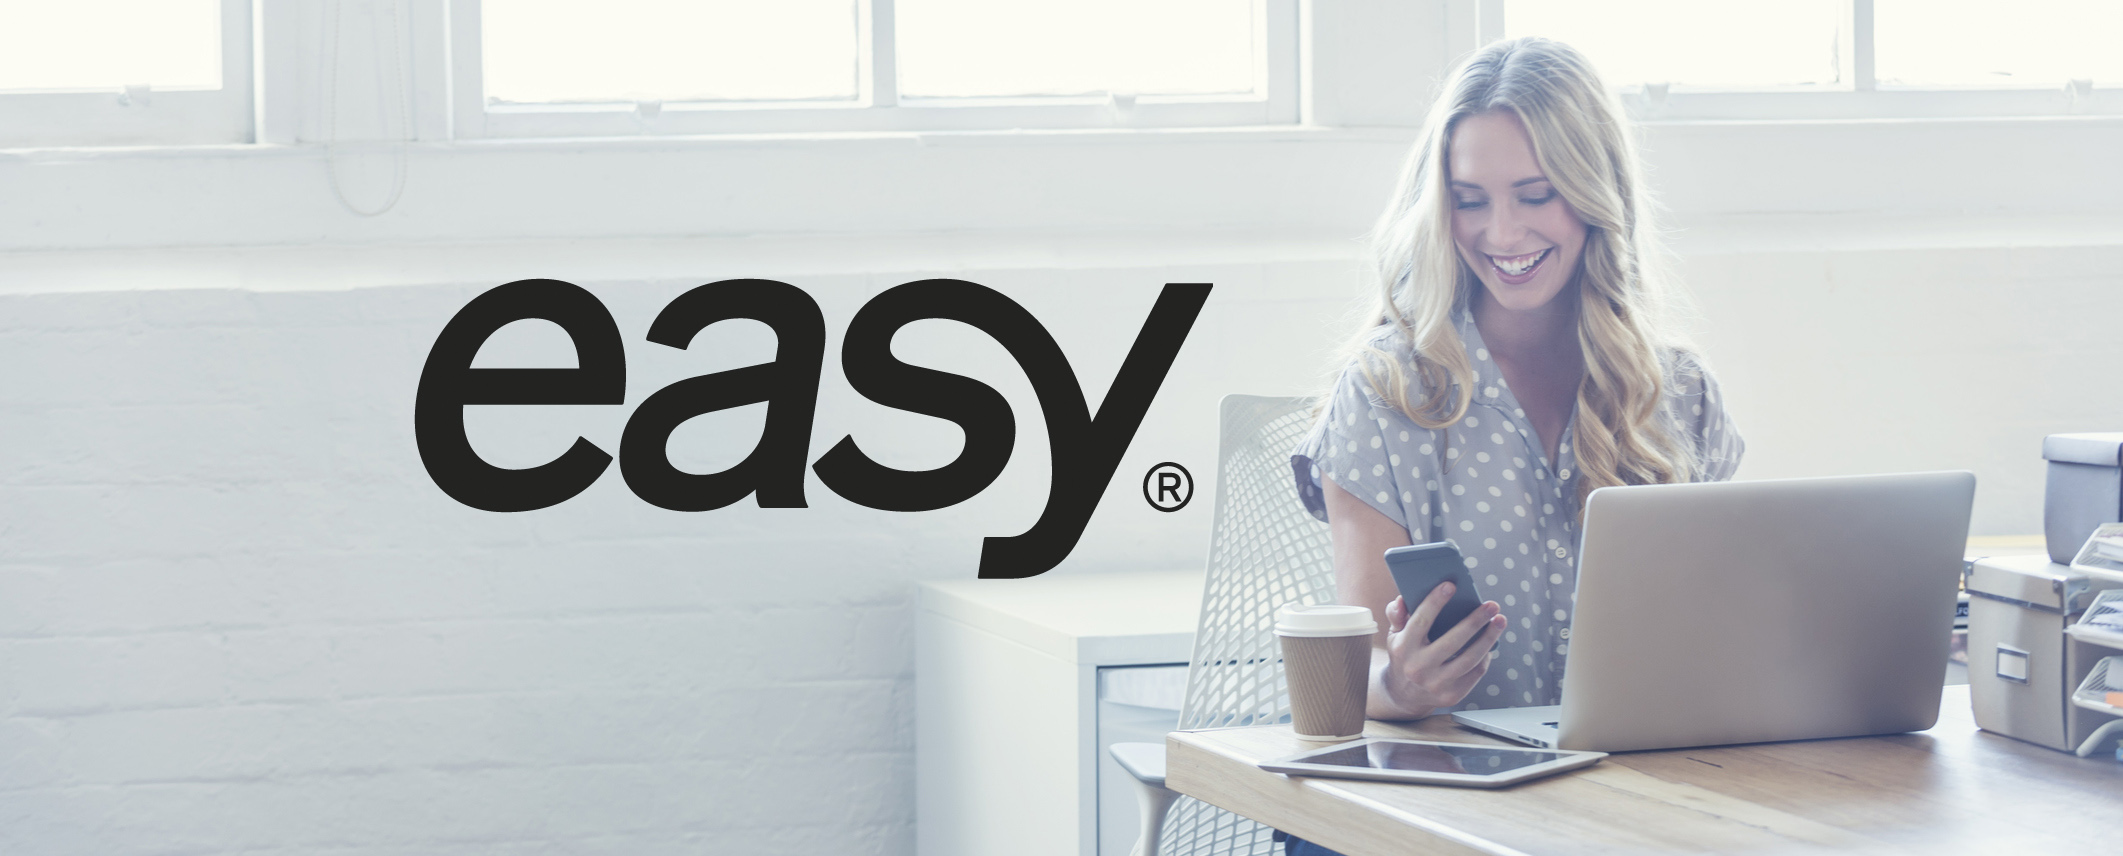 easy-logo-woman